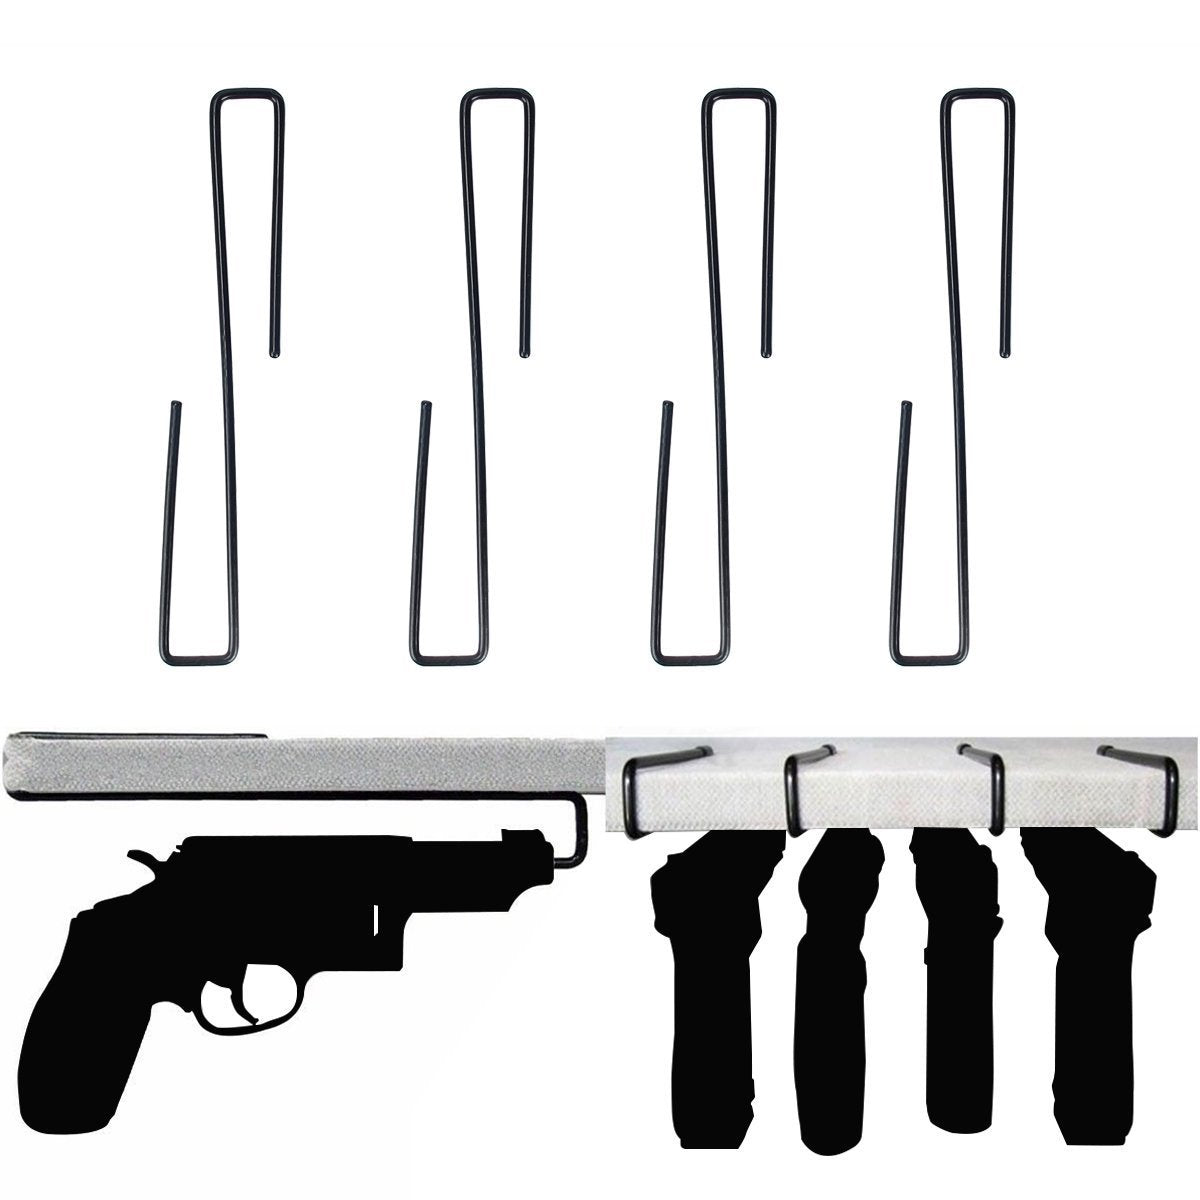 Storage cyberone pack of 8 handgun pistol hangers stainless steel gun hanger vinyl coated hook shelves safes